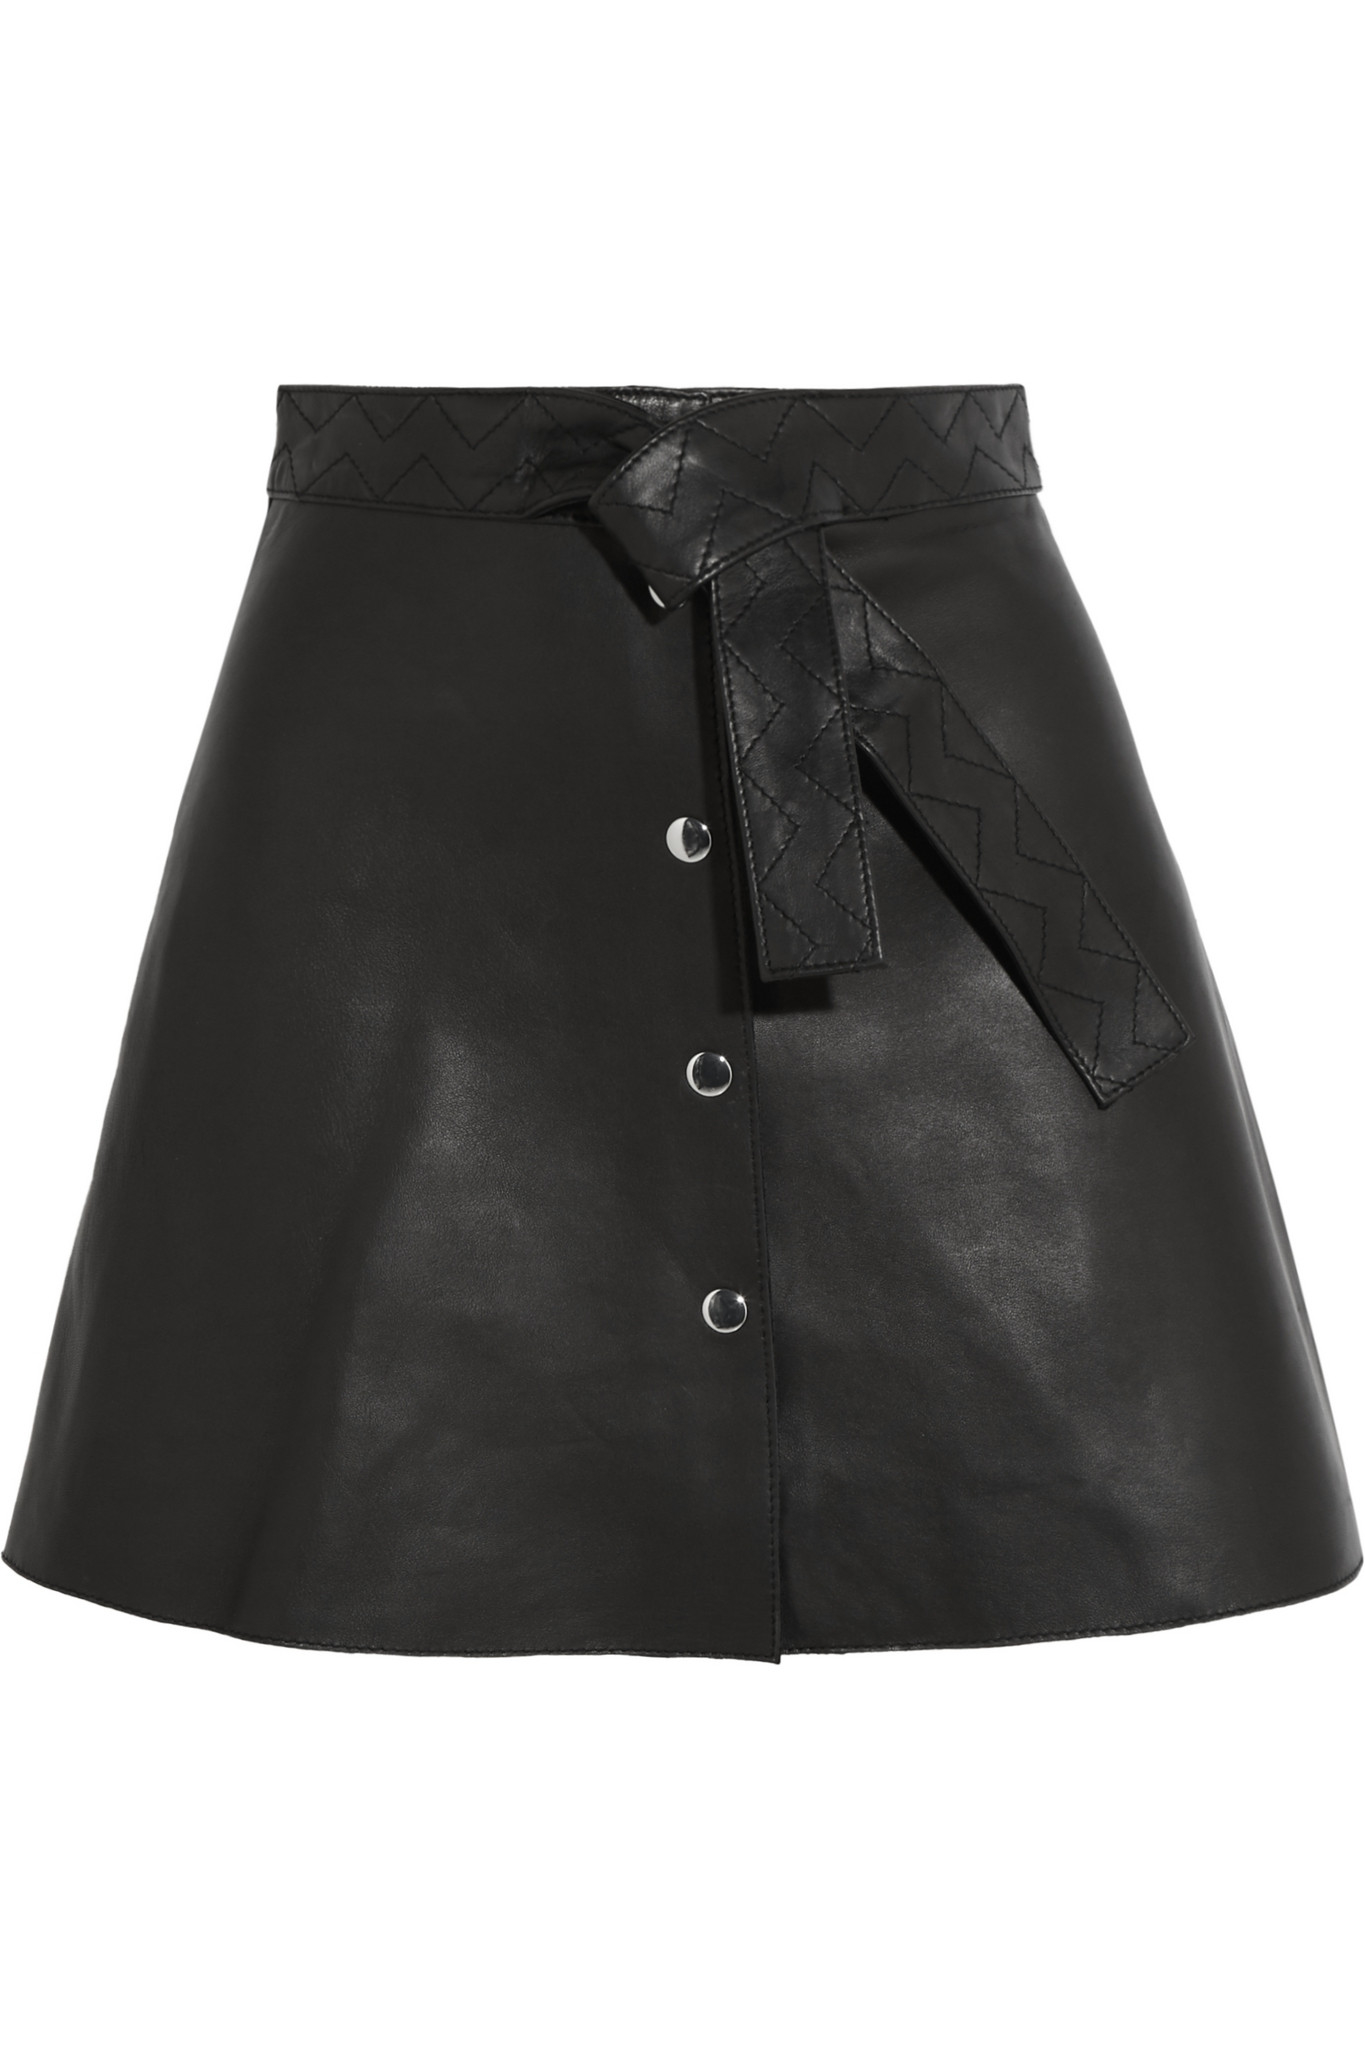 Maje Belted Leather Mini Skirt in Black | Lyst